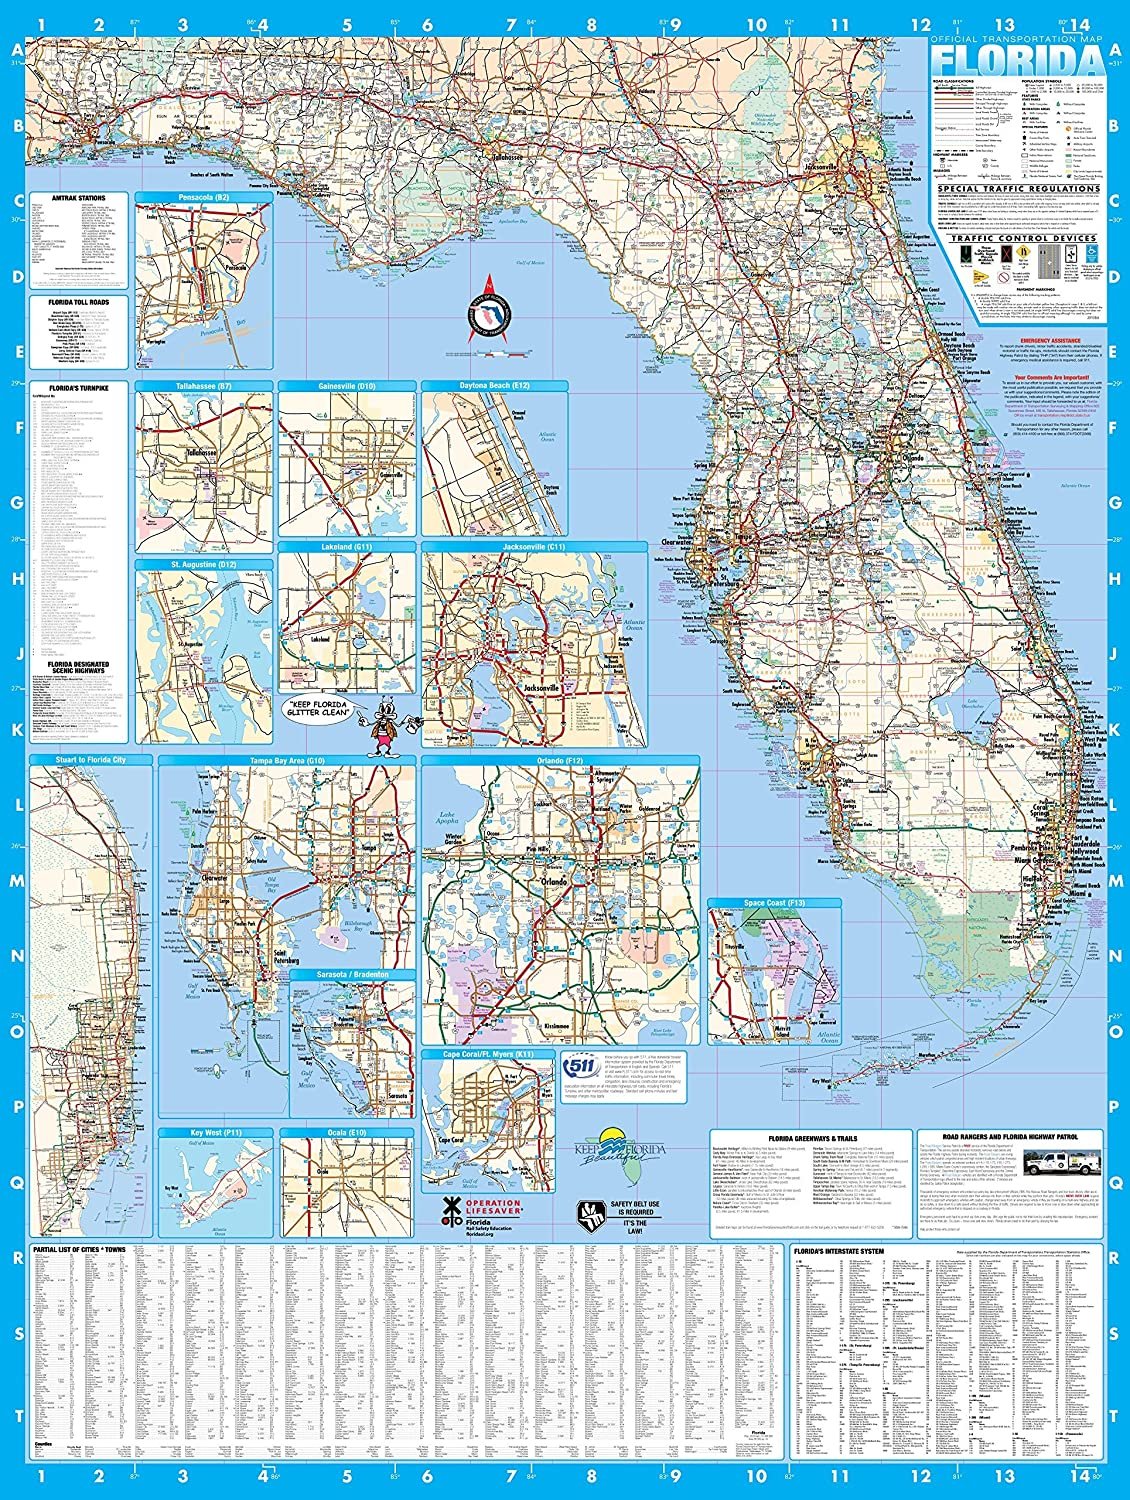 Flordia State Map.Amazon Com Florida State Laminated Wall Map Poster 36x48 Office